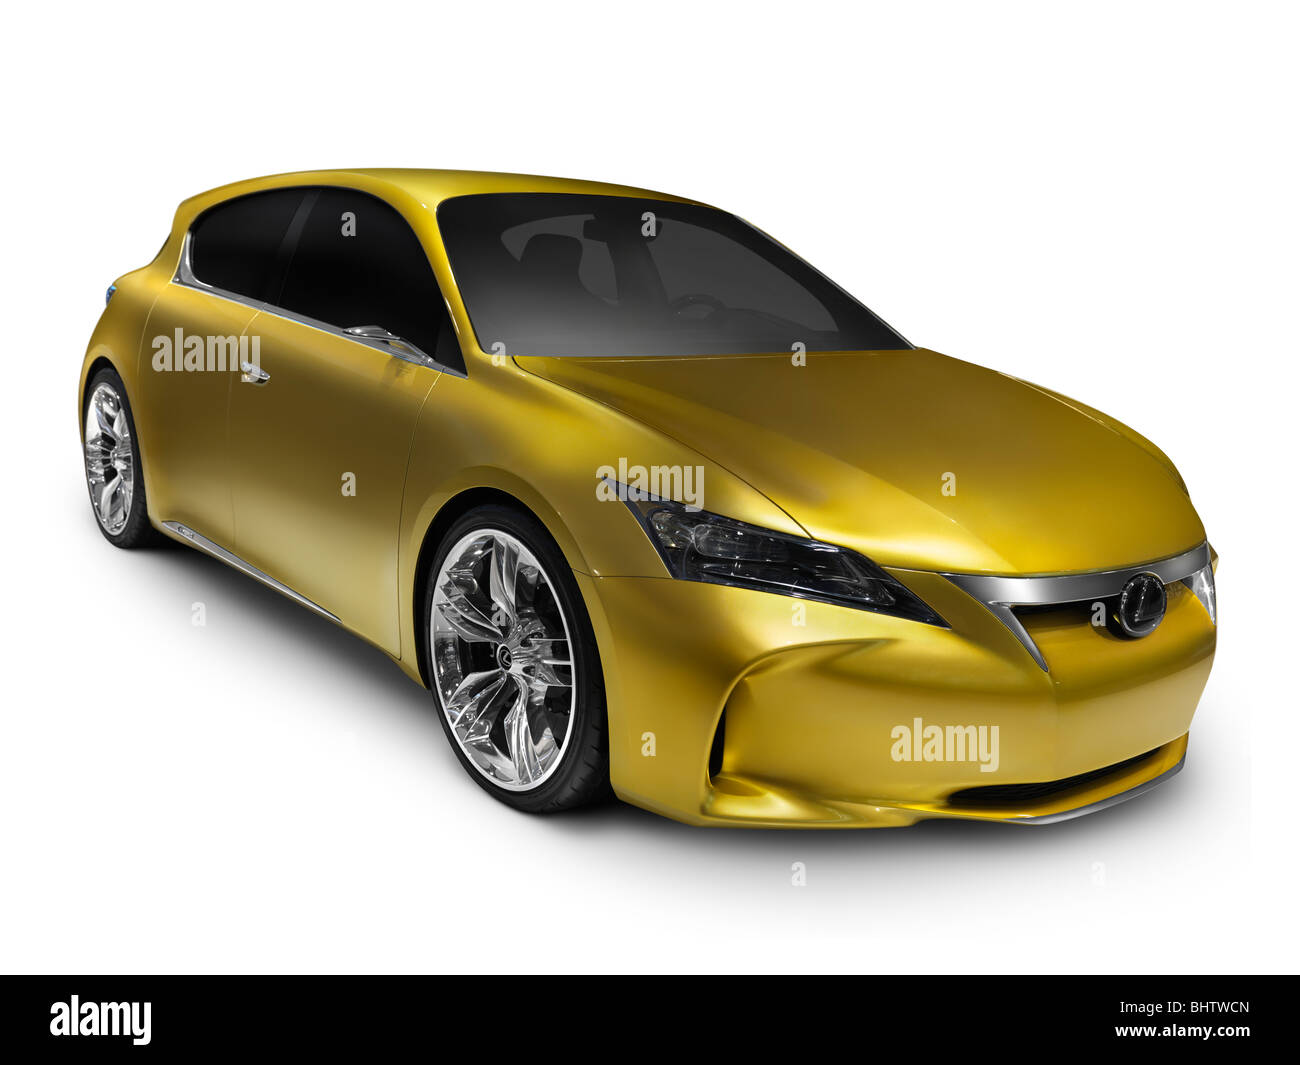 Gold shiny Lexus LF-Ch hybrid concept car. Isolated on white background with clipping path. - Stock Image